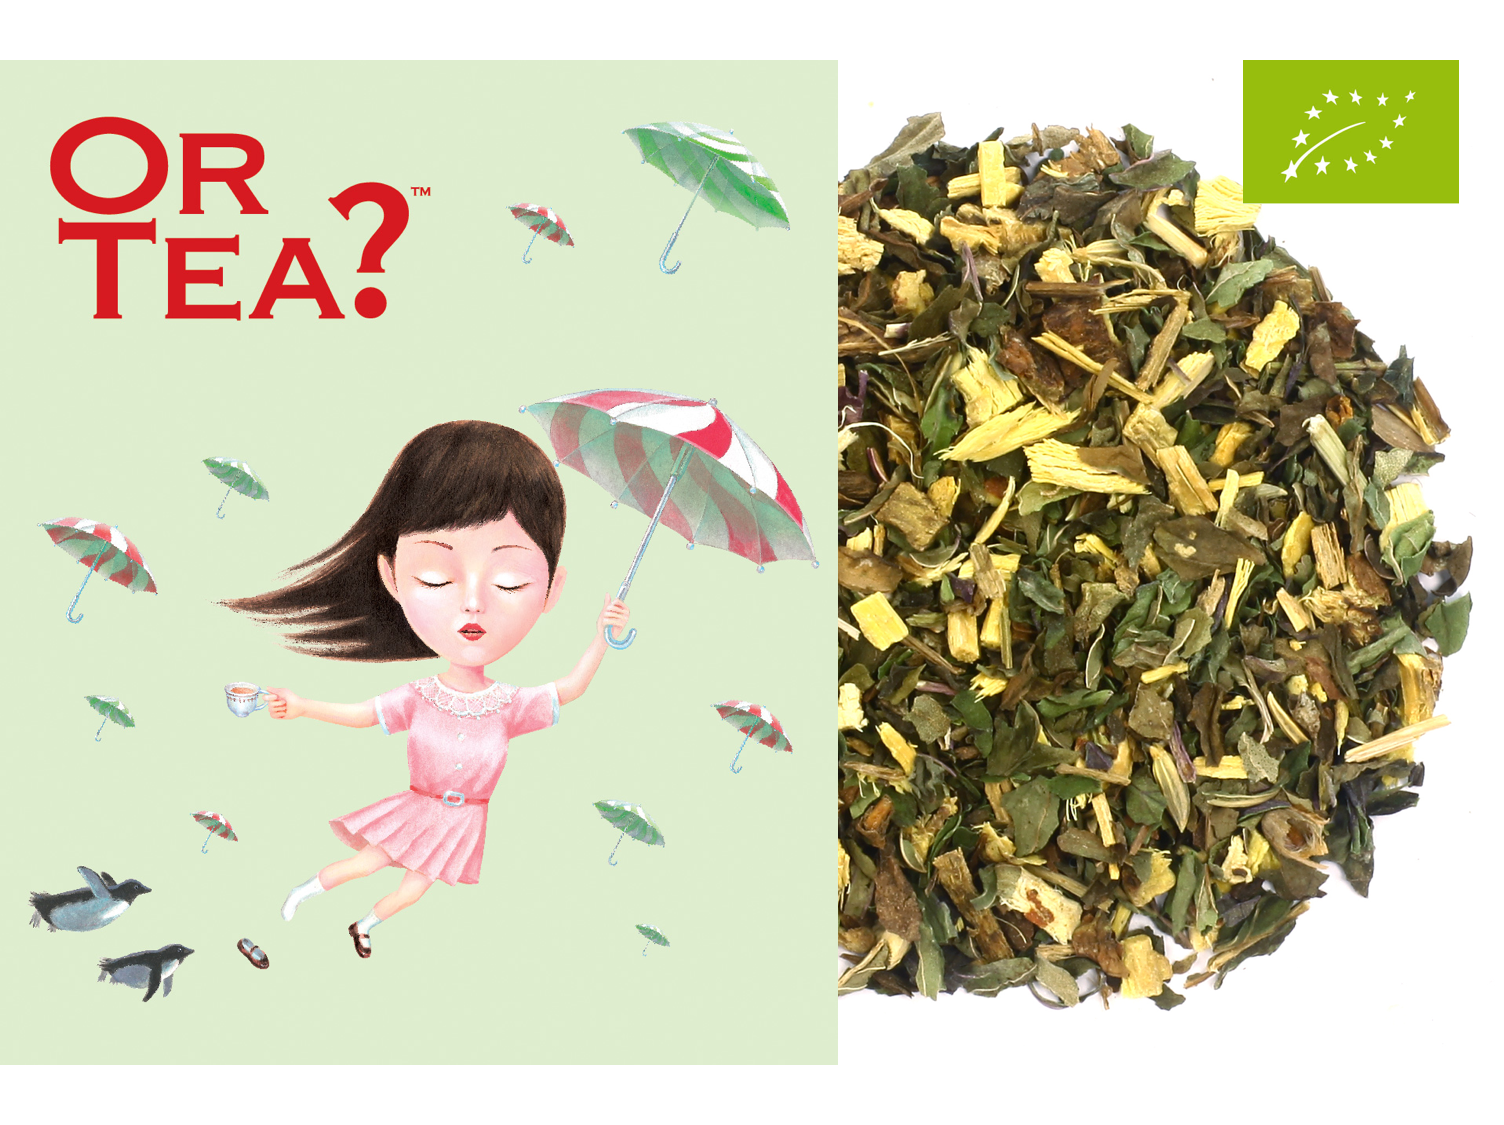 Or Tea? - Combo Box - The Chill Box - Zelfgemaakte ijsthee